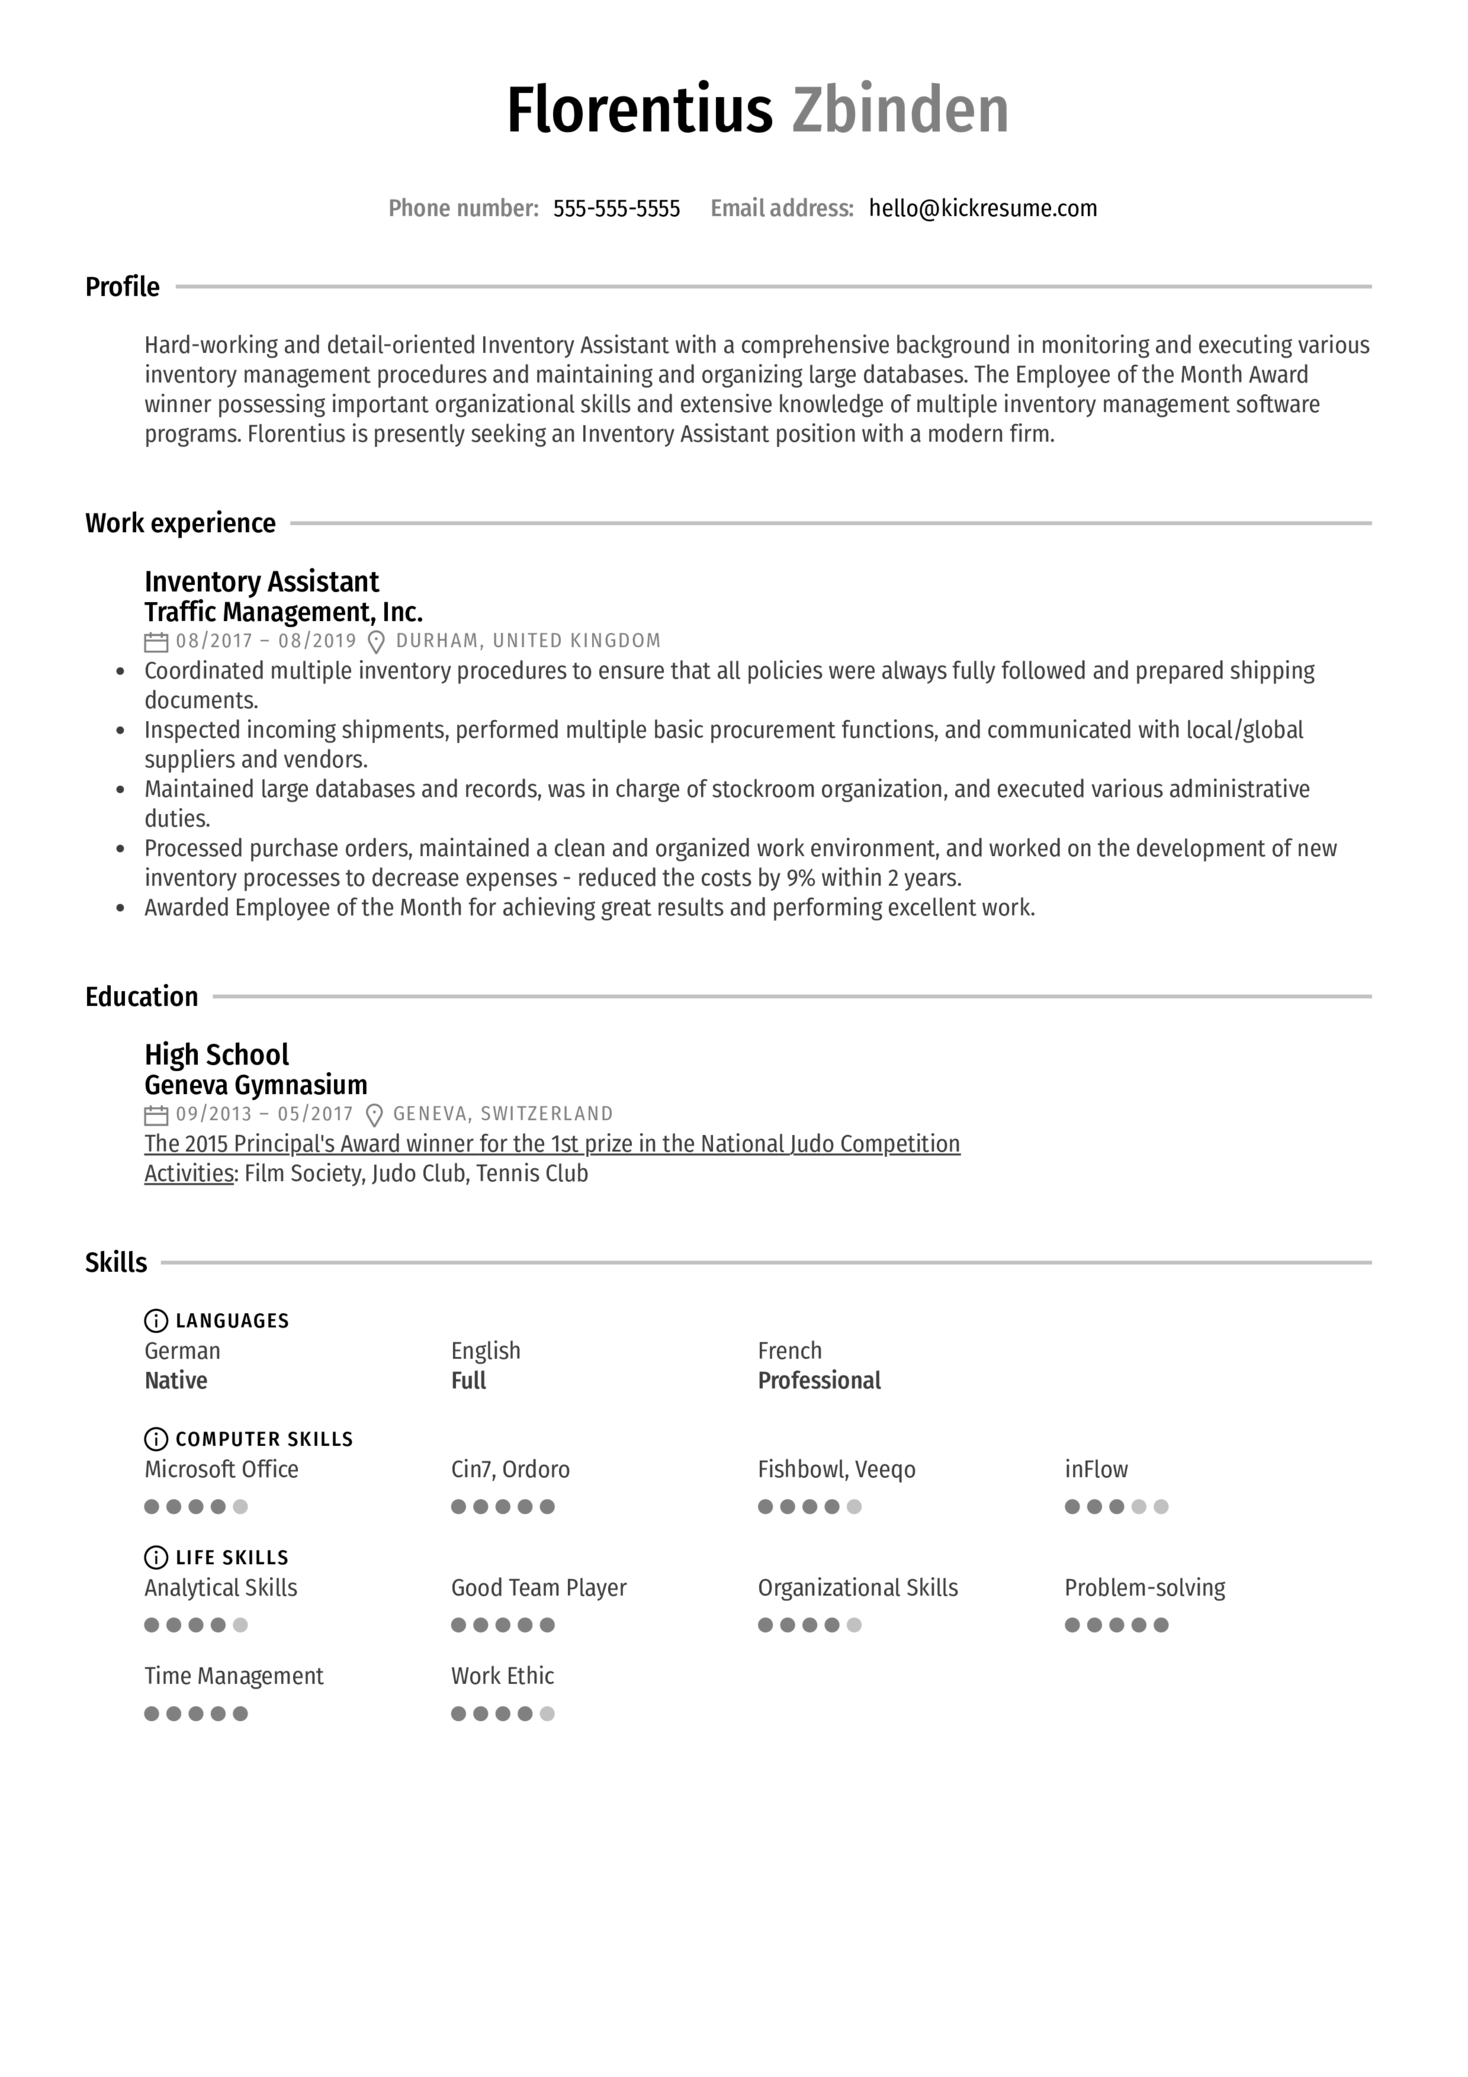 Inventory Assistant Resume Sample (parte 1)